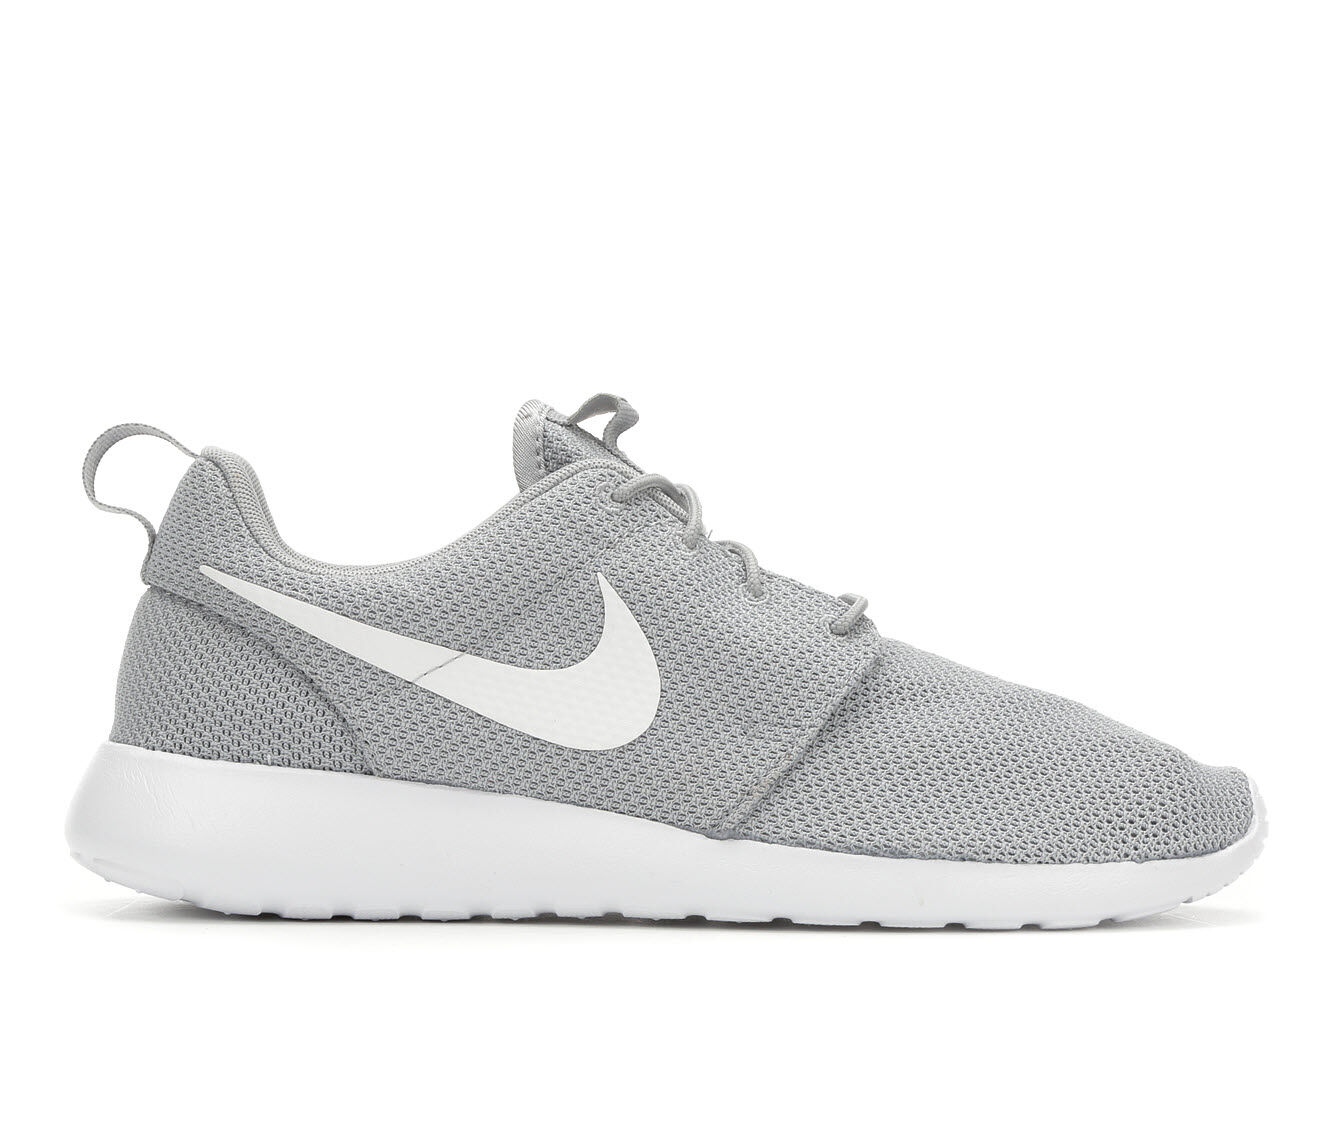 Innovative Men's Nike Roshe One Sneakers Grey/White